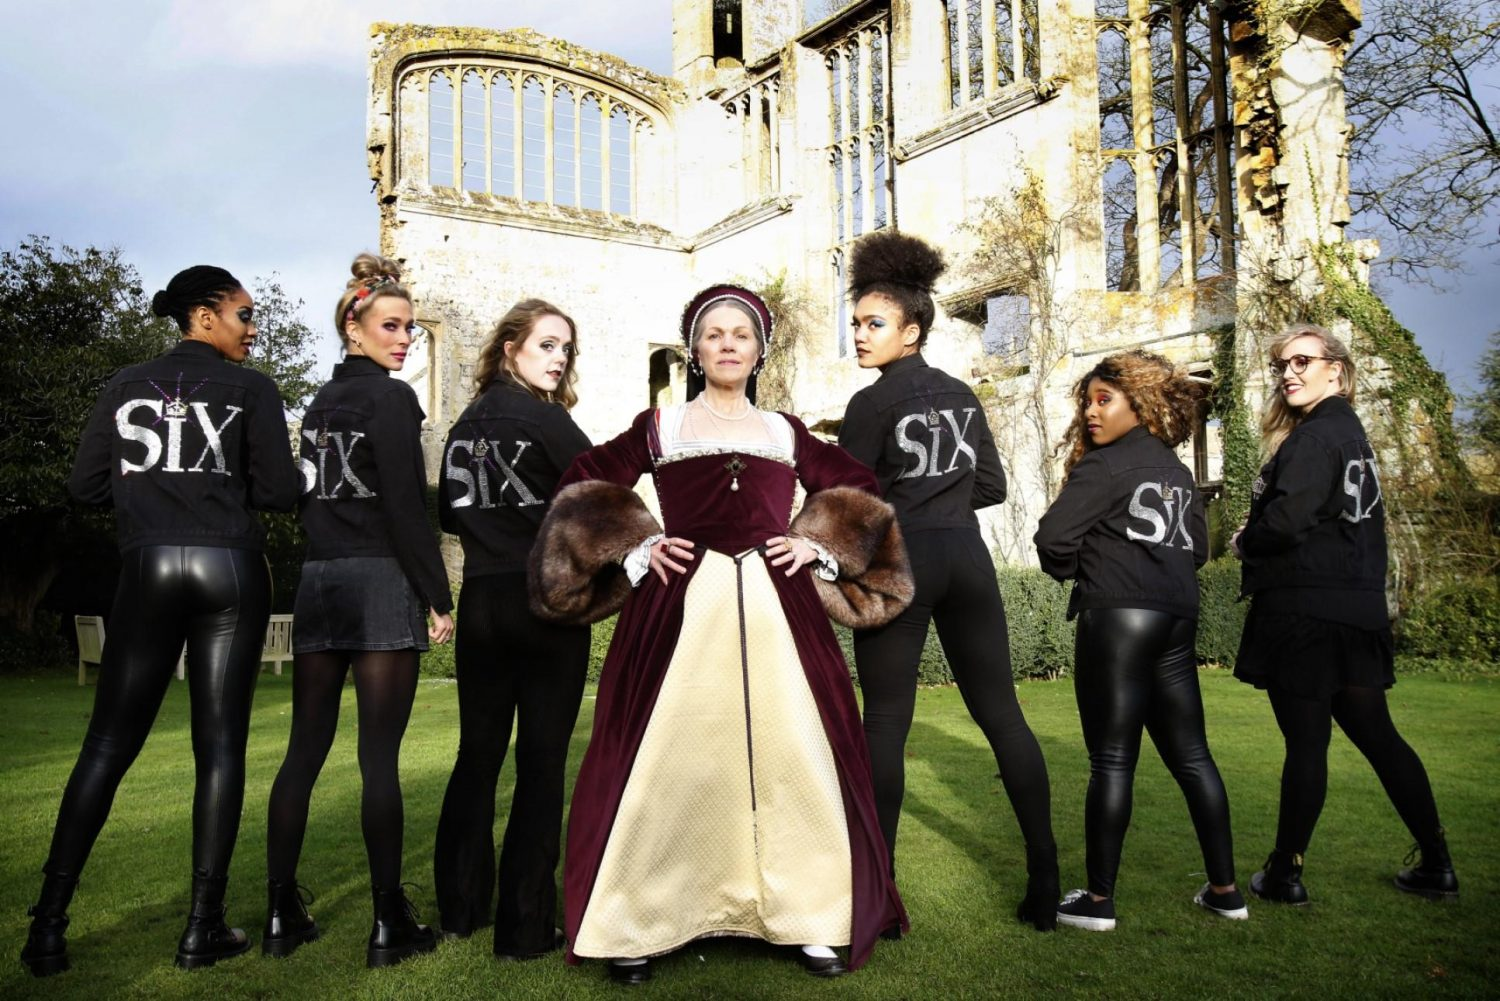 Cast of Six the Musical with traditional Katherine Parr reenactor